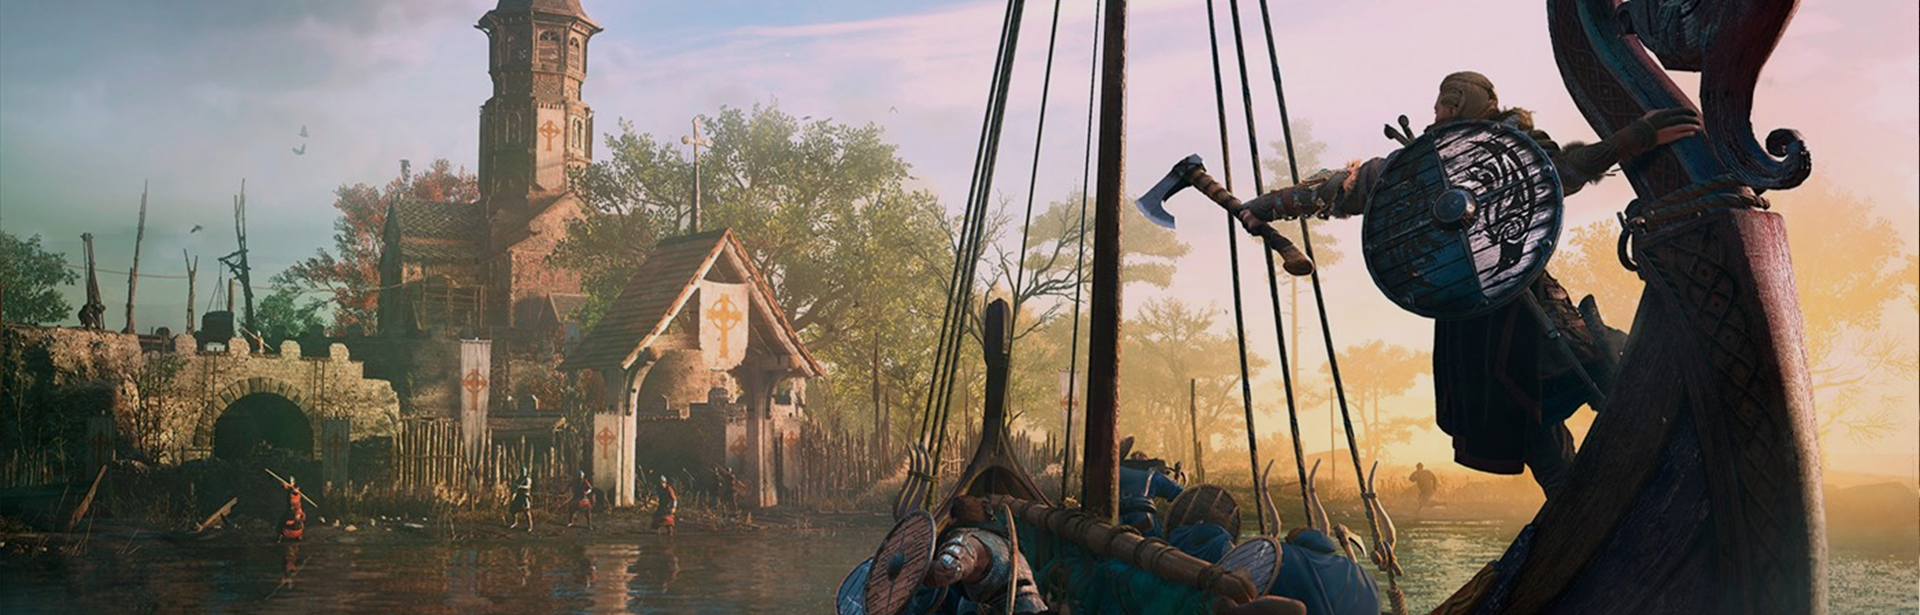 Assassin's Creed Valhalla Game Guide header